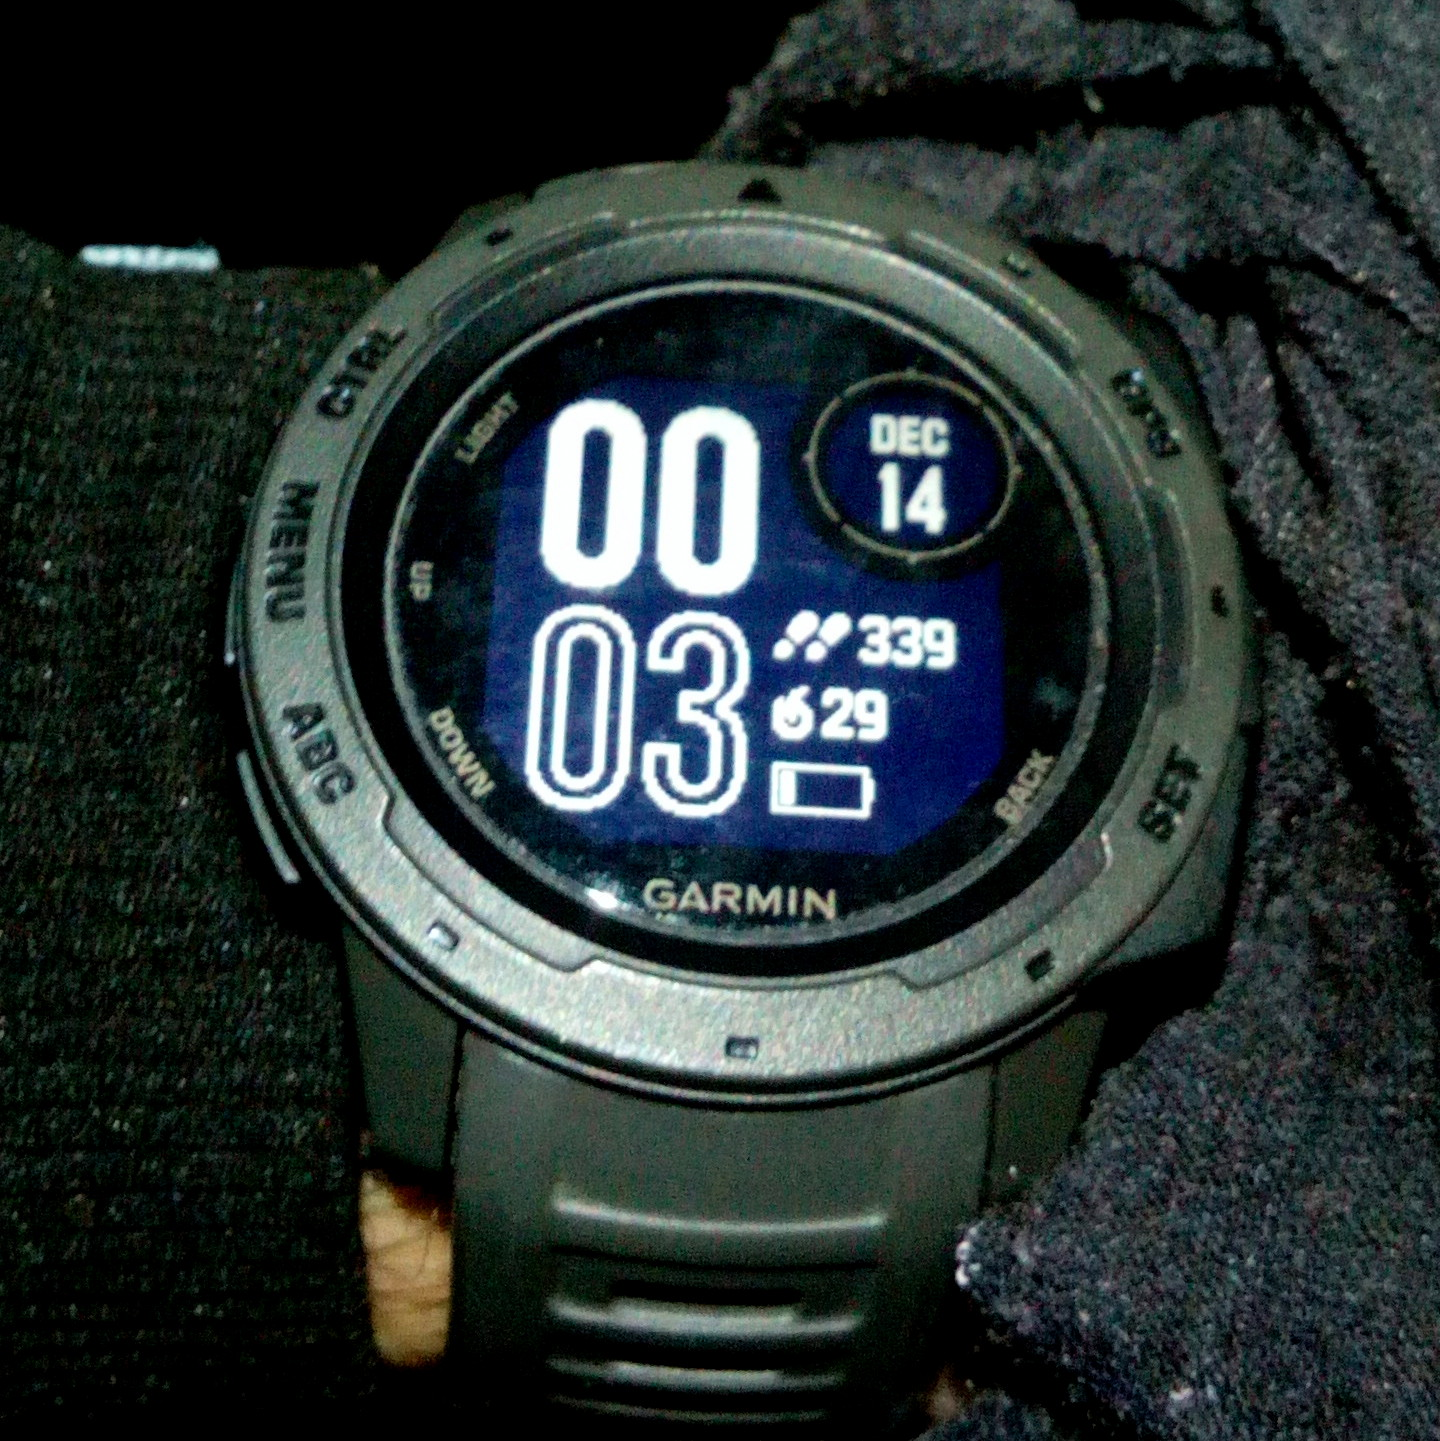 My current watchface. Could not make it more minimal.